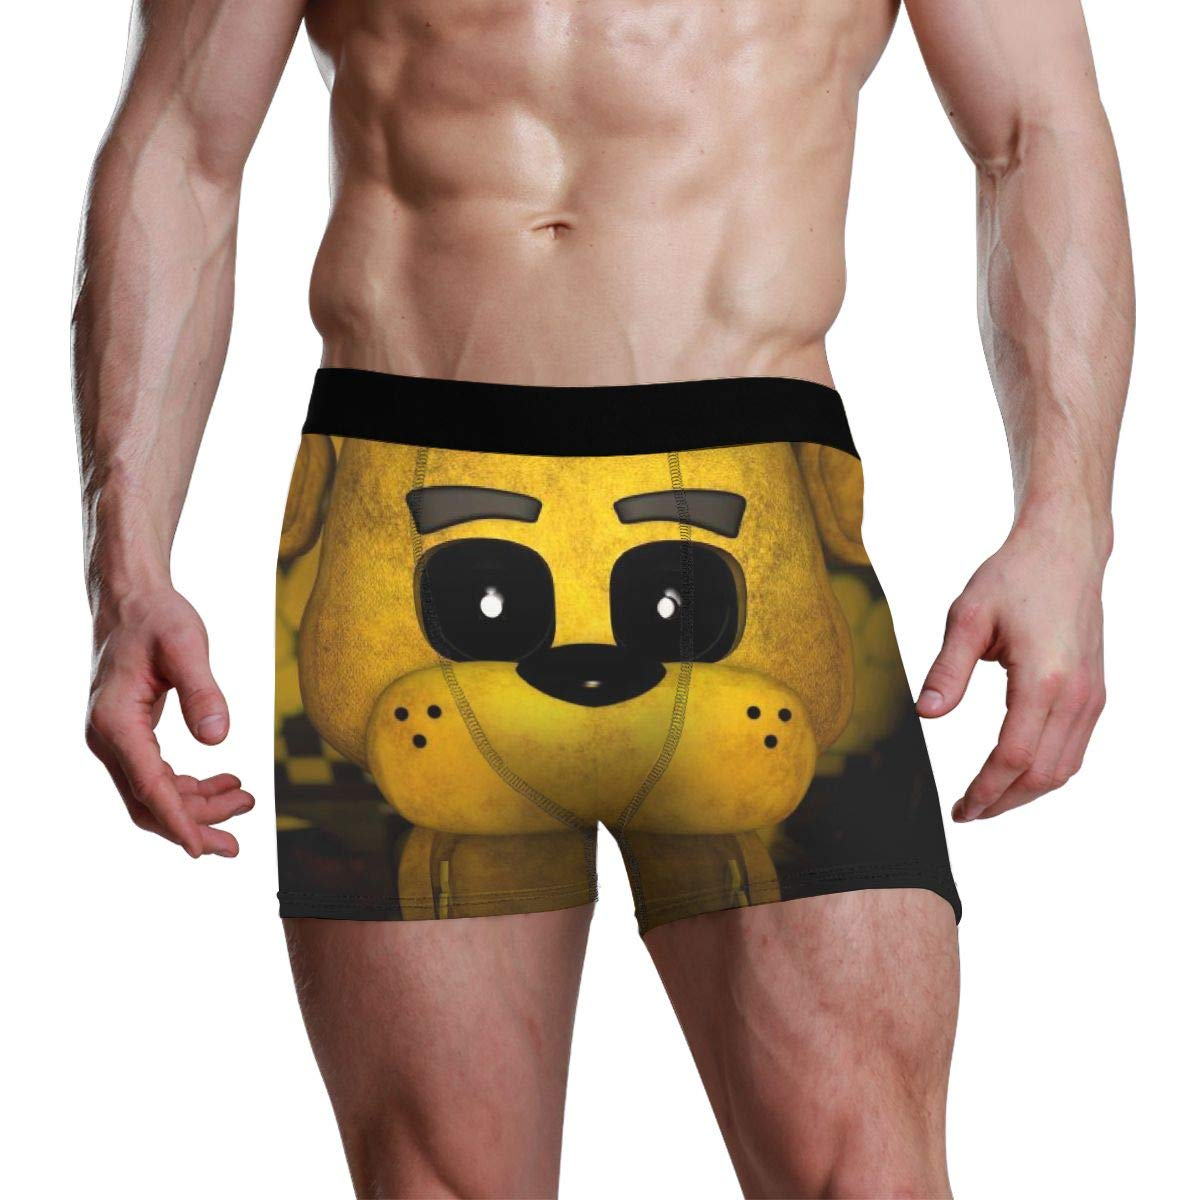 LixuA Mens Five Nights at Freedys Cotton Underwear Stretch Trunks Boxer Briefs